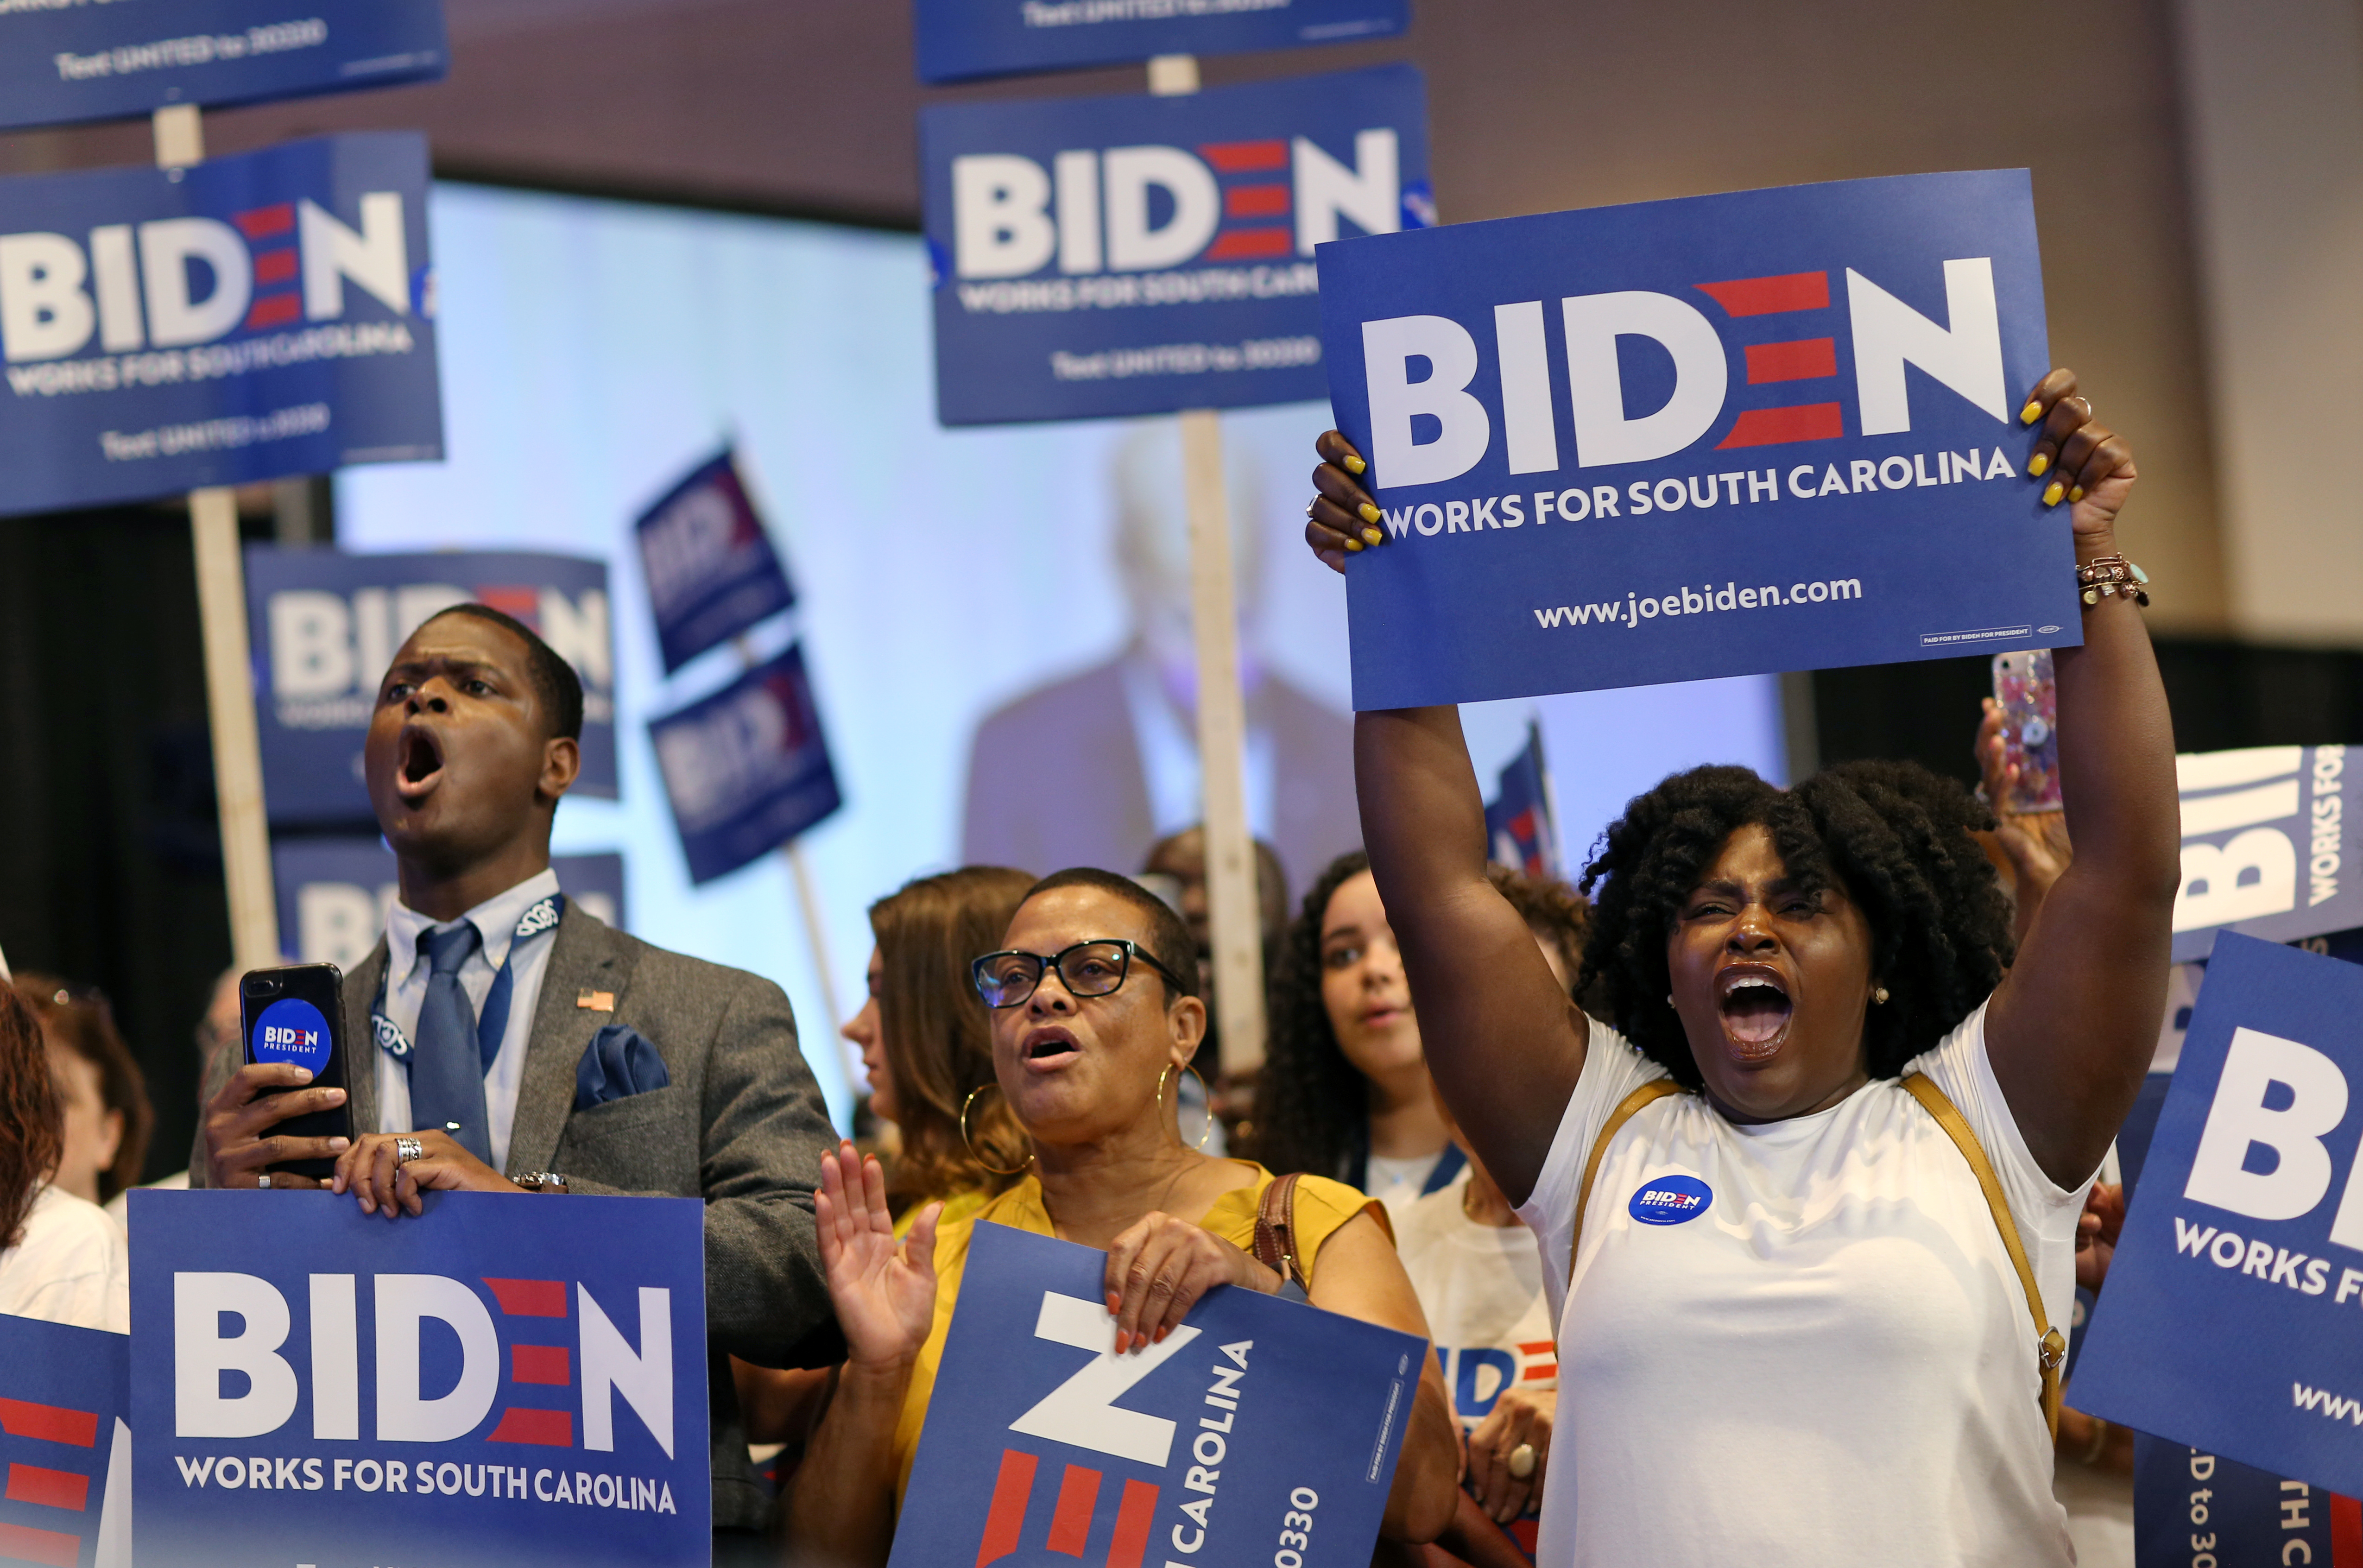 Candidates and supporters appear at the SC Democratic Convention in South Carolina